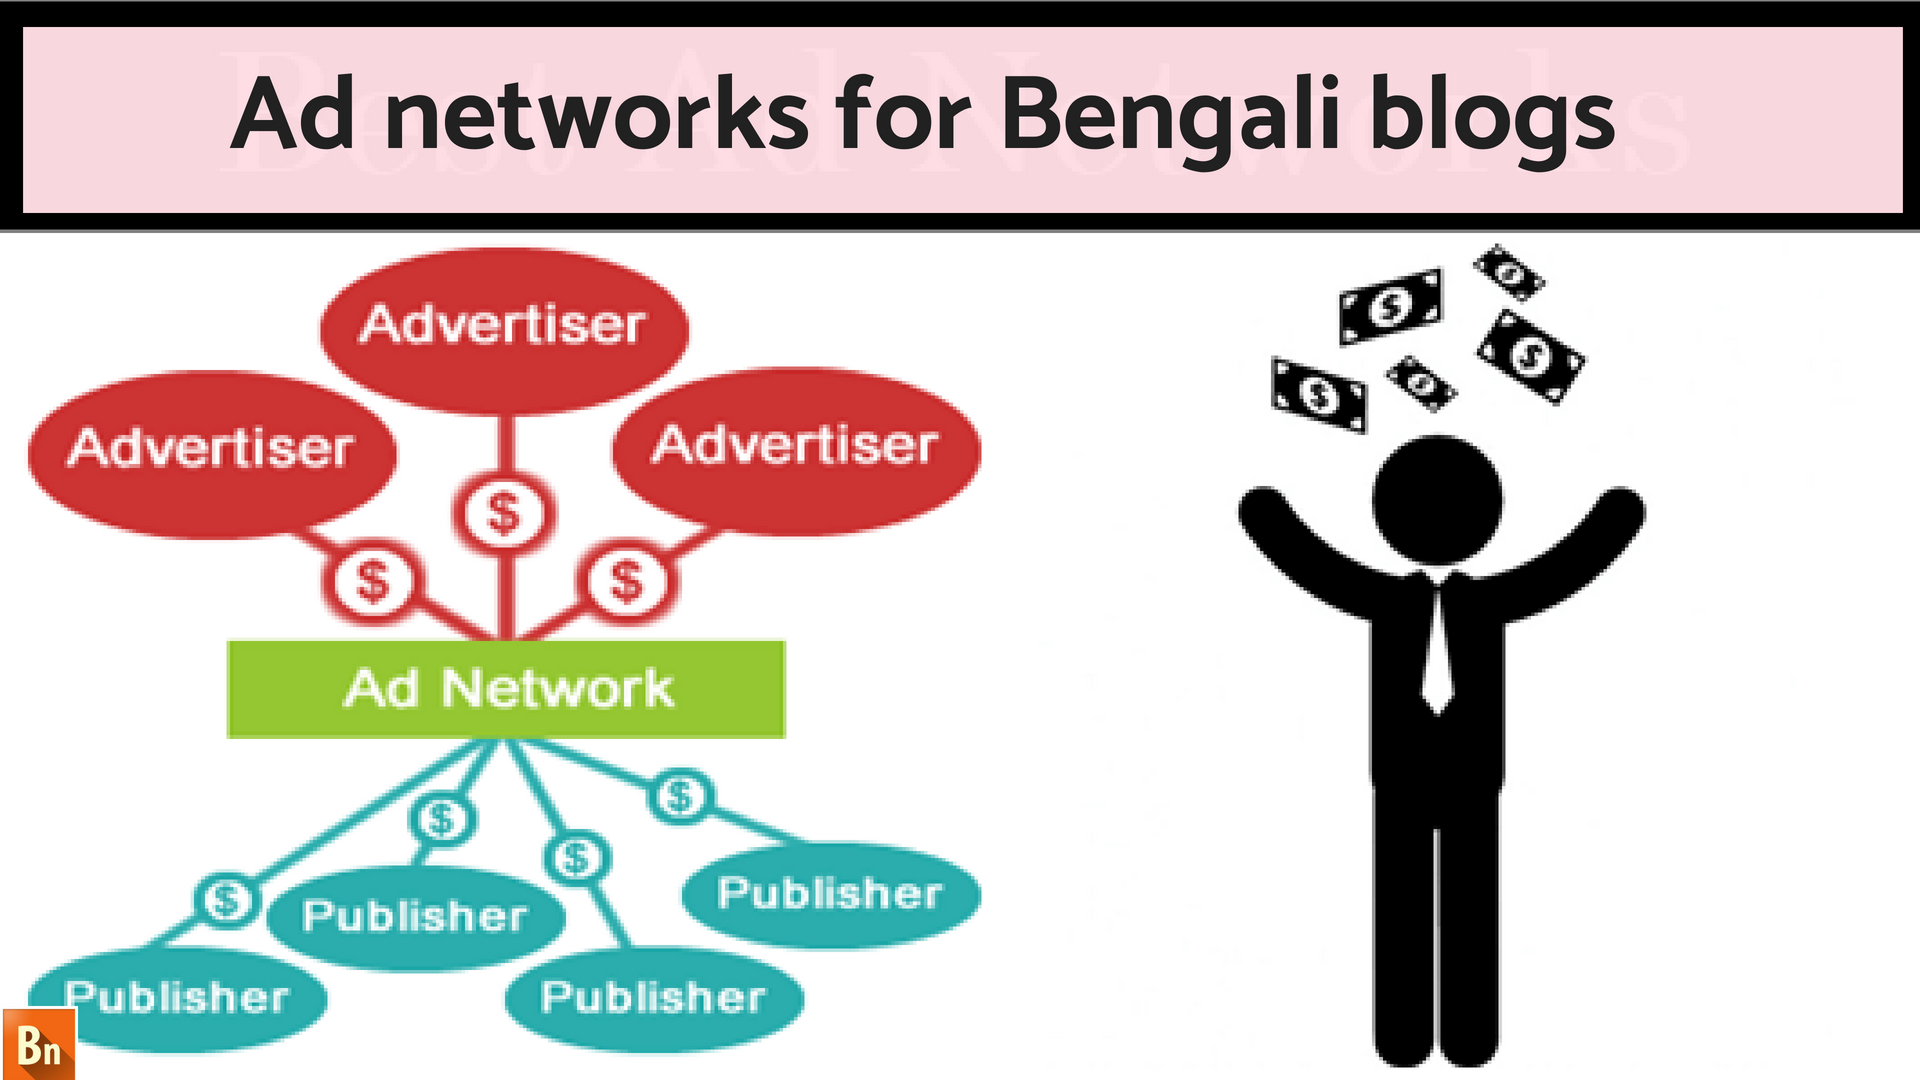 Best Ad Networks for Bengali Blogs 2018